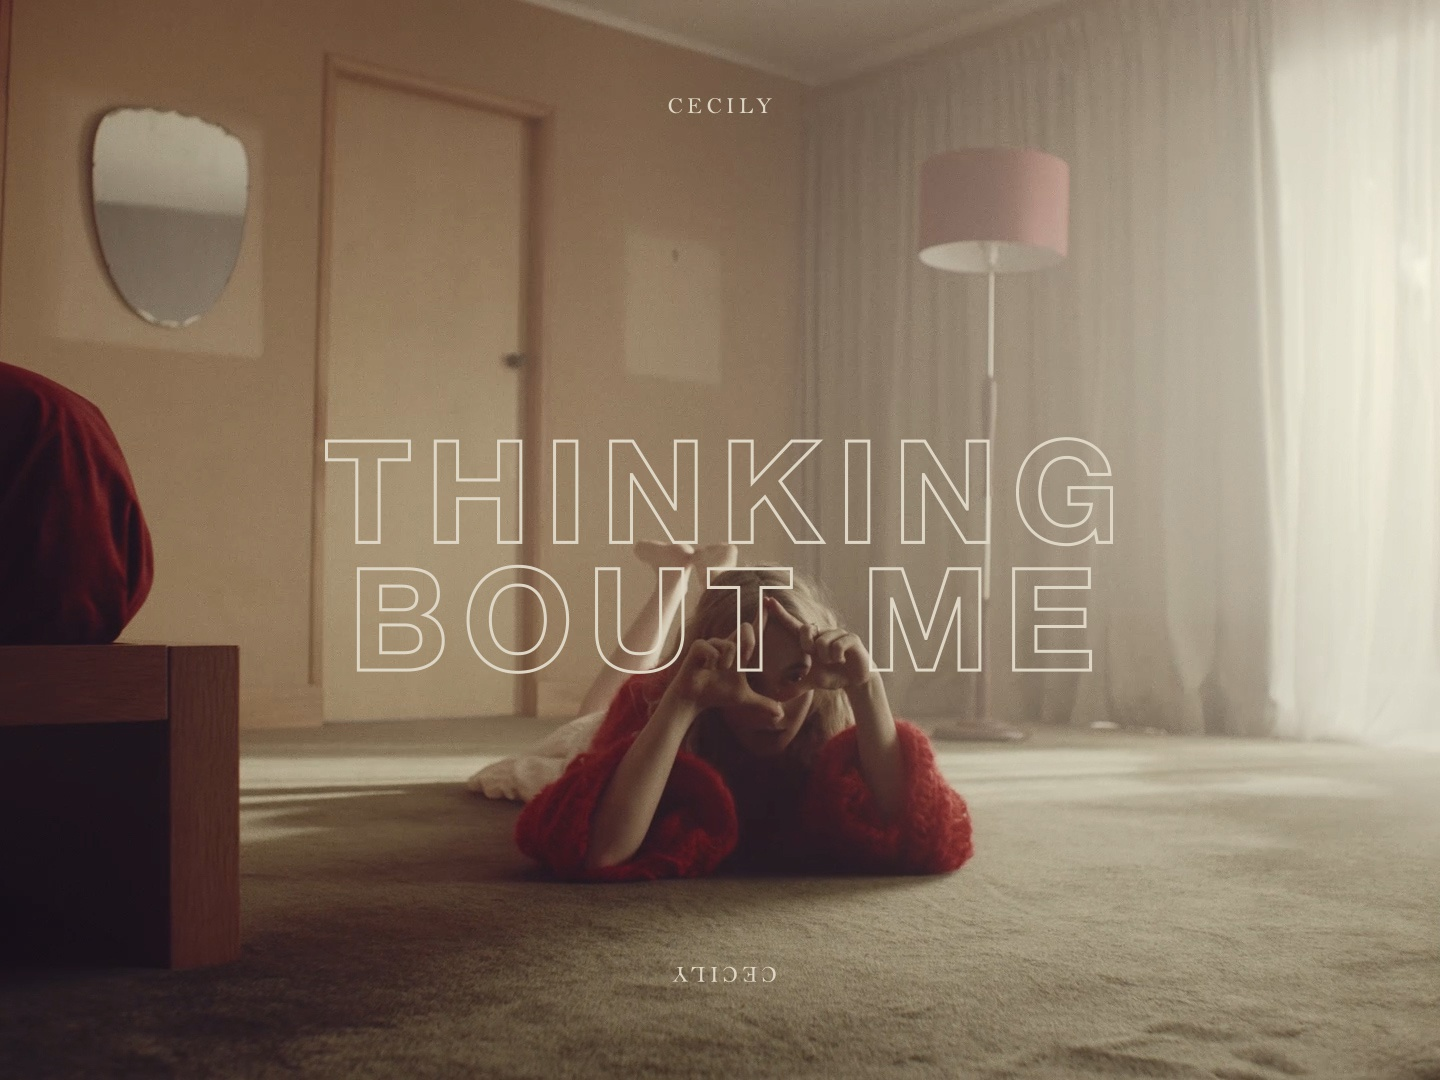 Cecily - Thinking Bout Me creative direction film music video directing design art direction typography